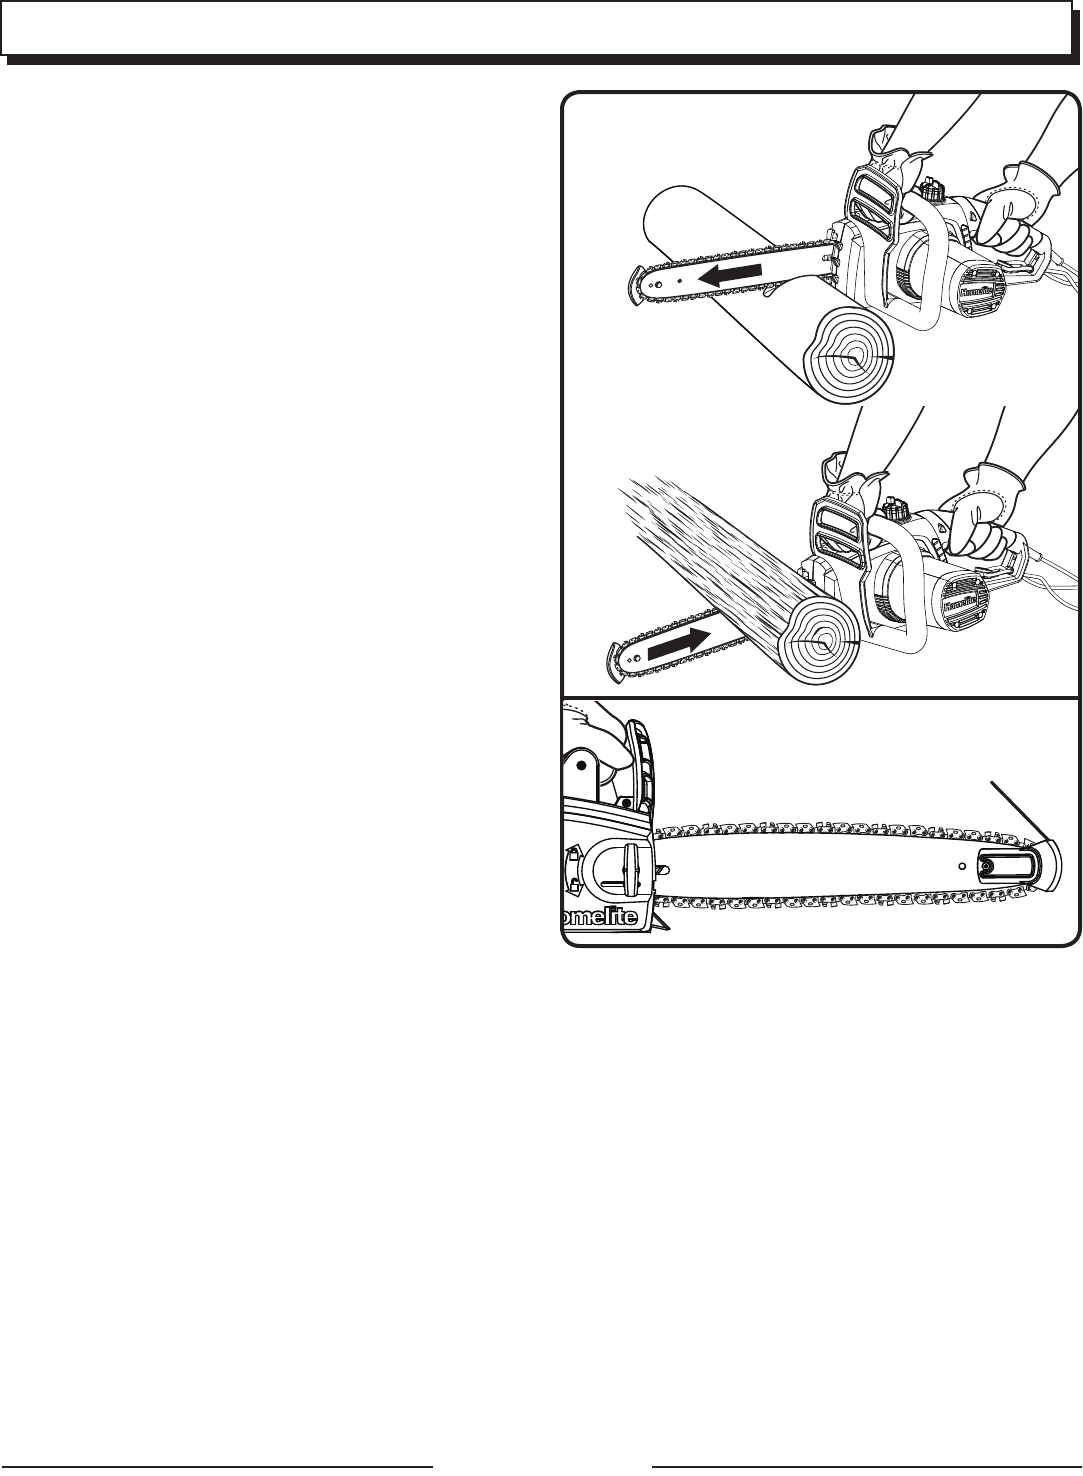 Page 6 of Homelite Chainsaw UT43122 User Guide